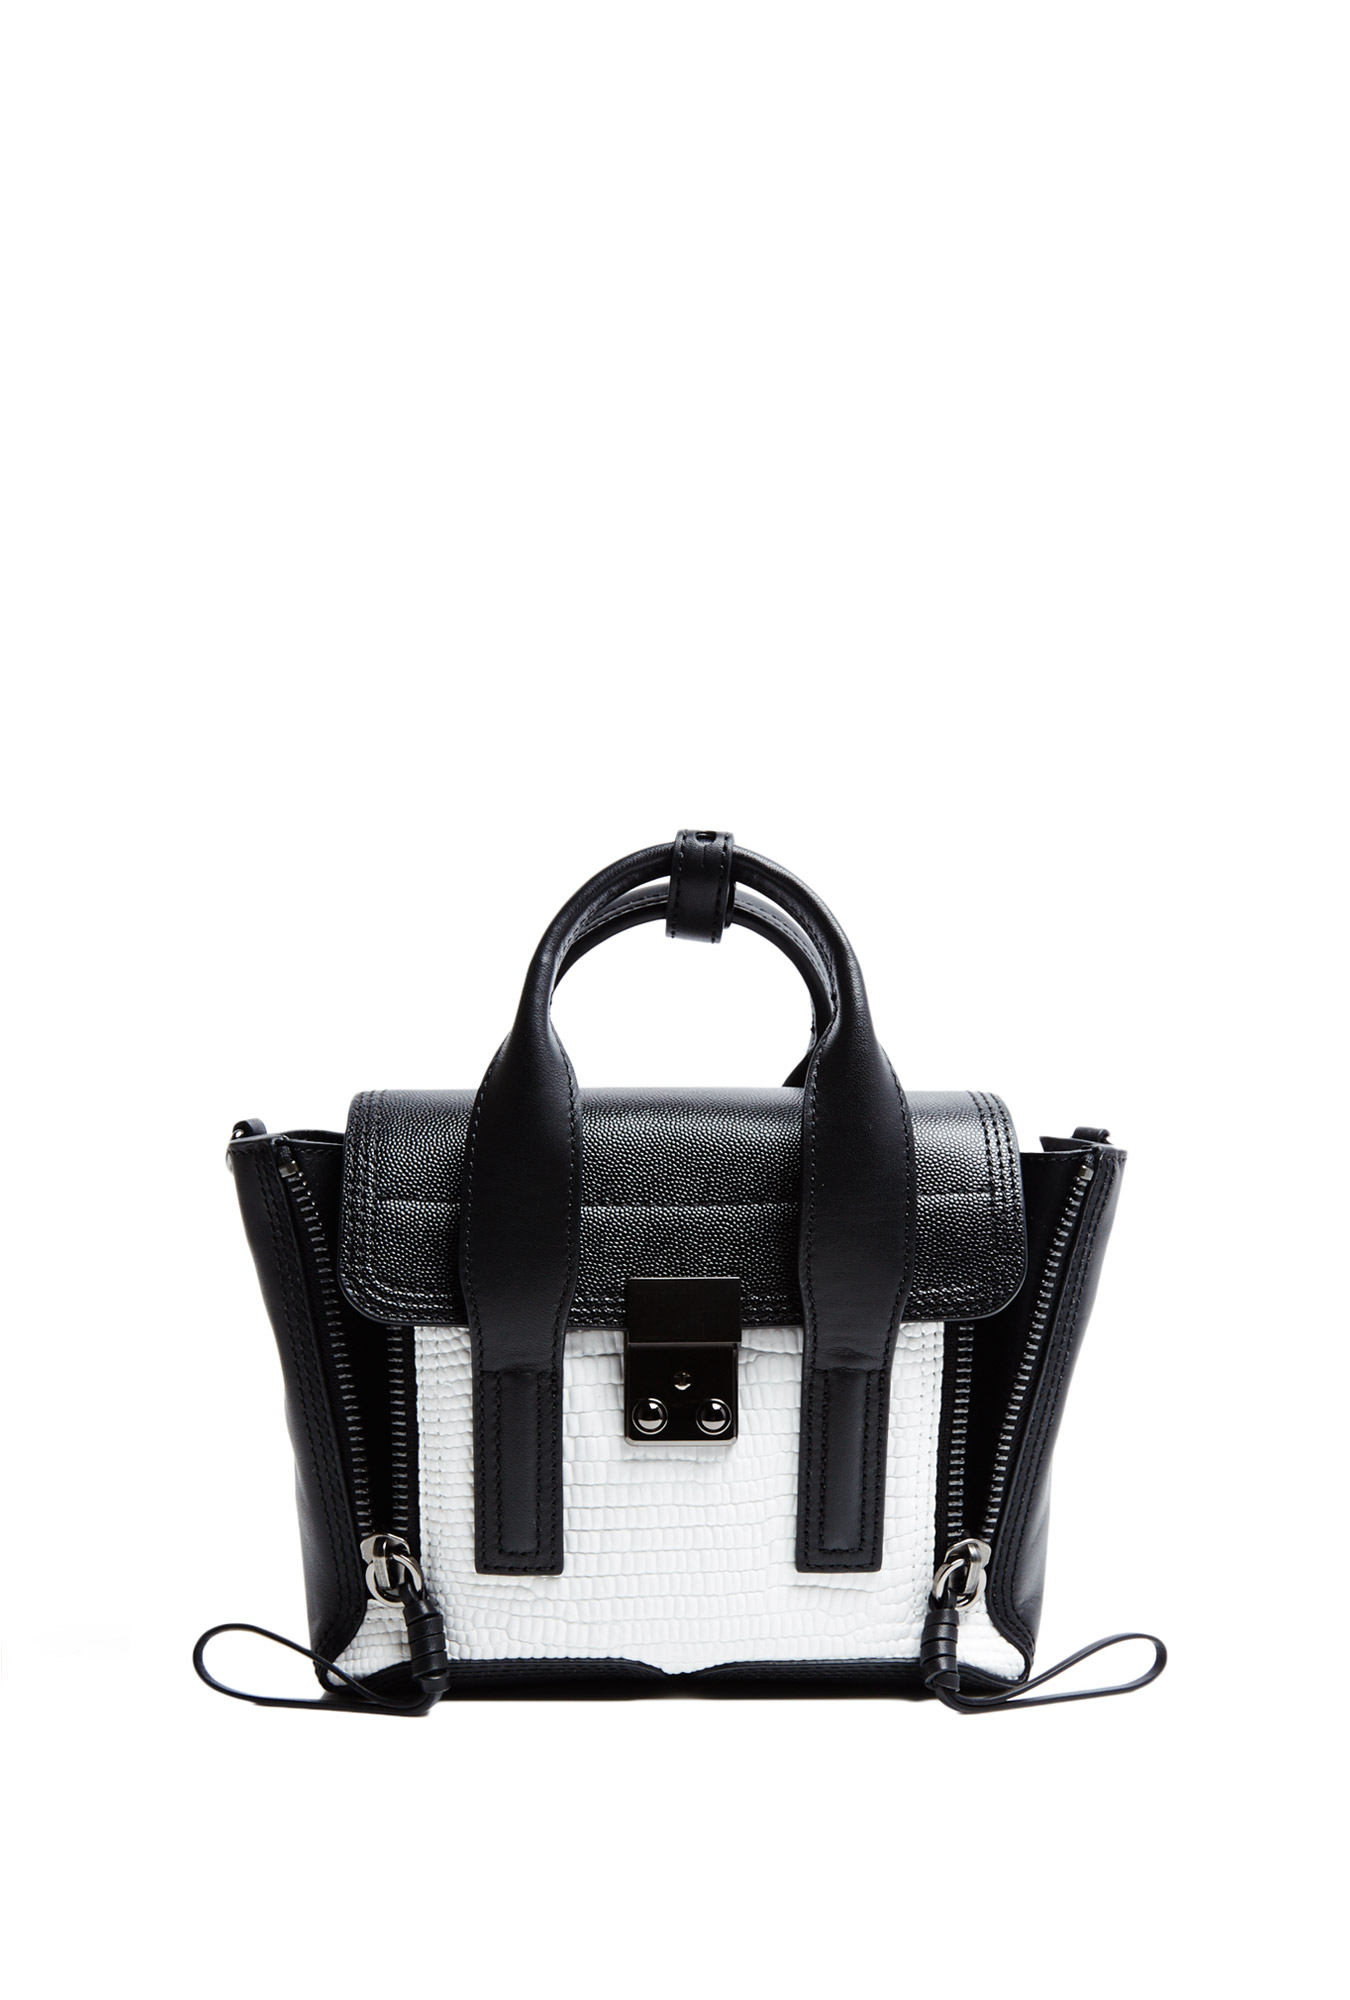 3.1 Phillip Lim  | Monochrome Pashli Mini Satchel by 3.1 Phillip Lim